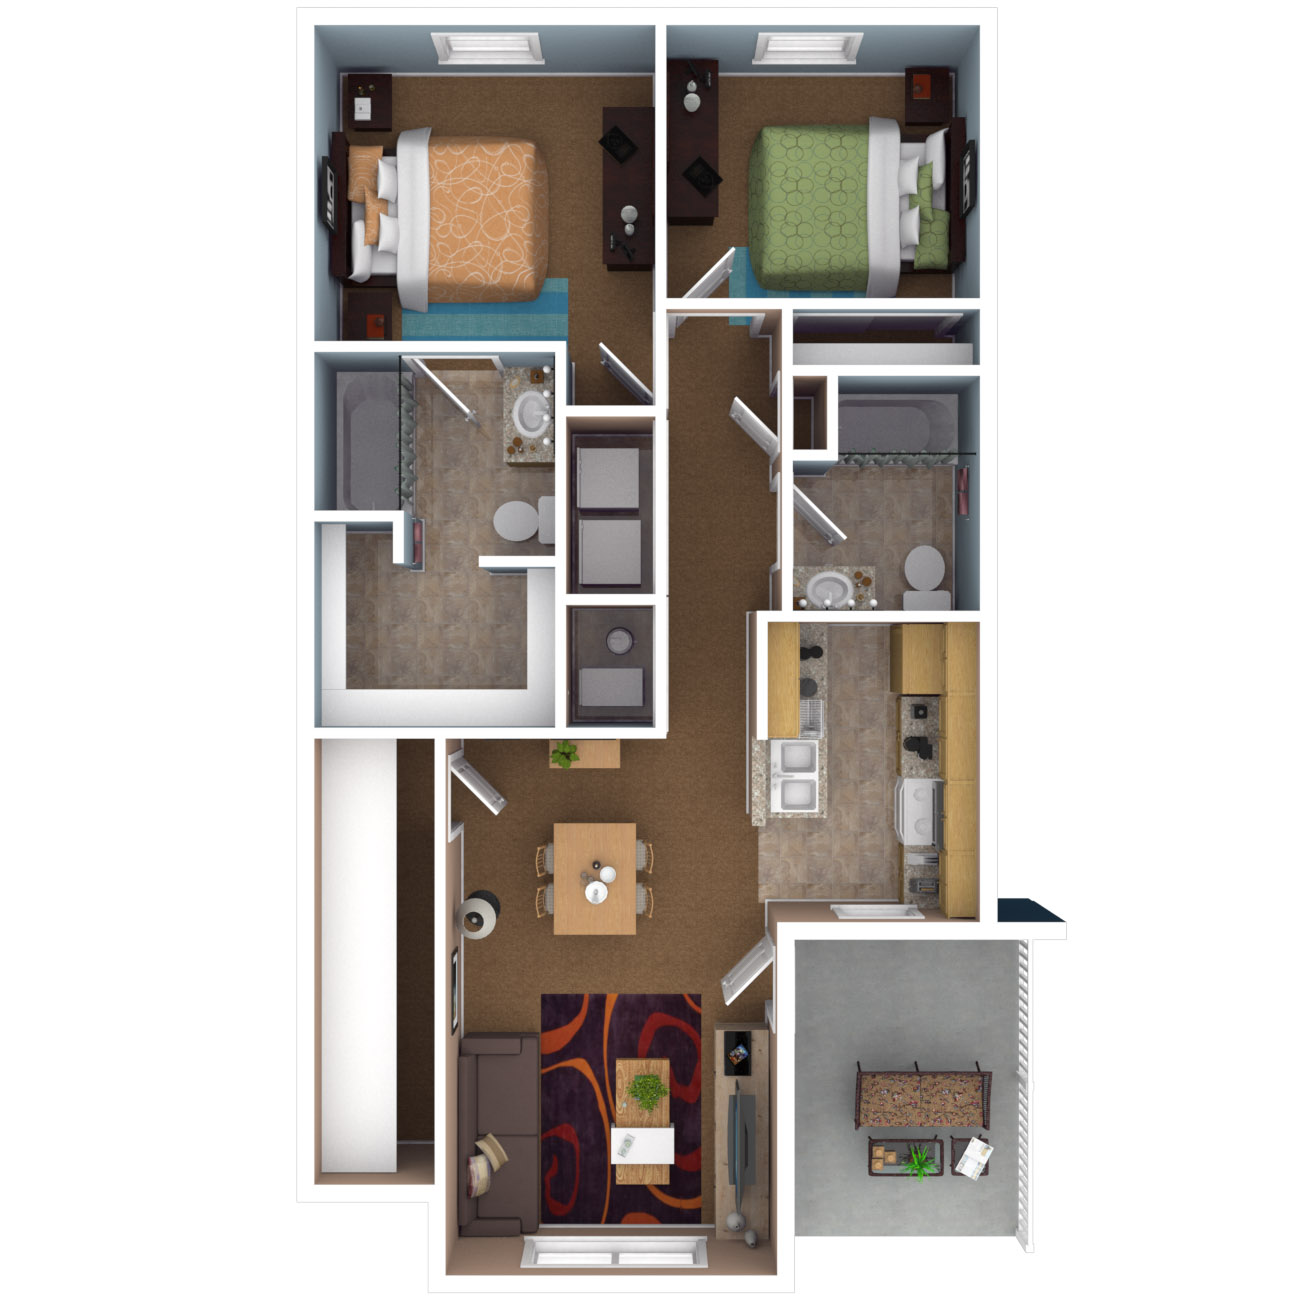 Apartments in indianapolis floor plans 2 bedroom apartment design